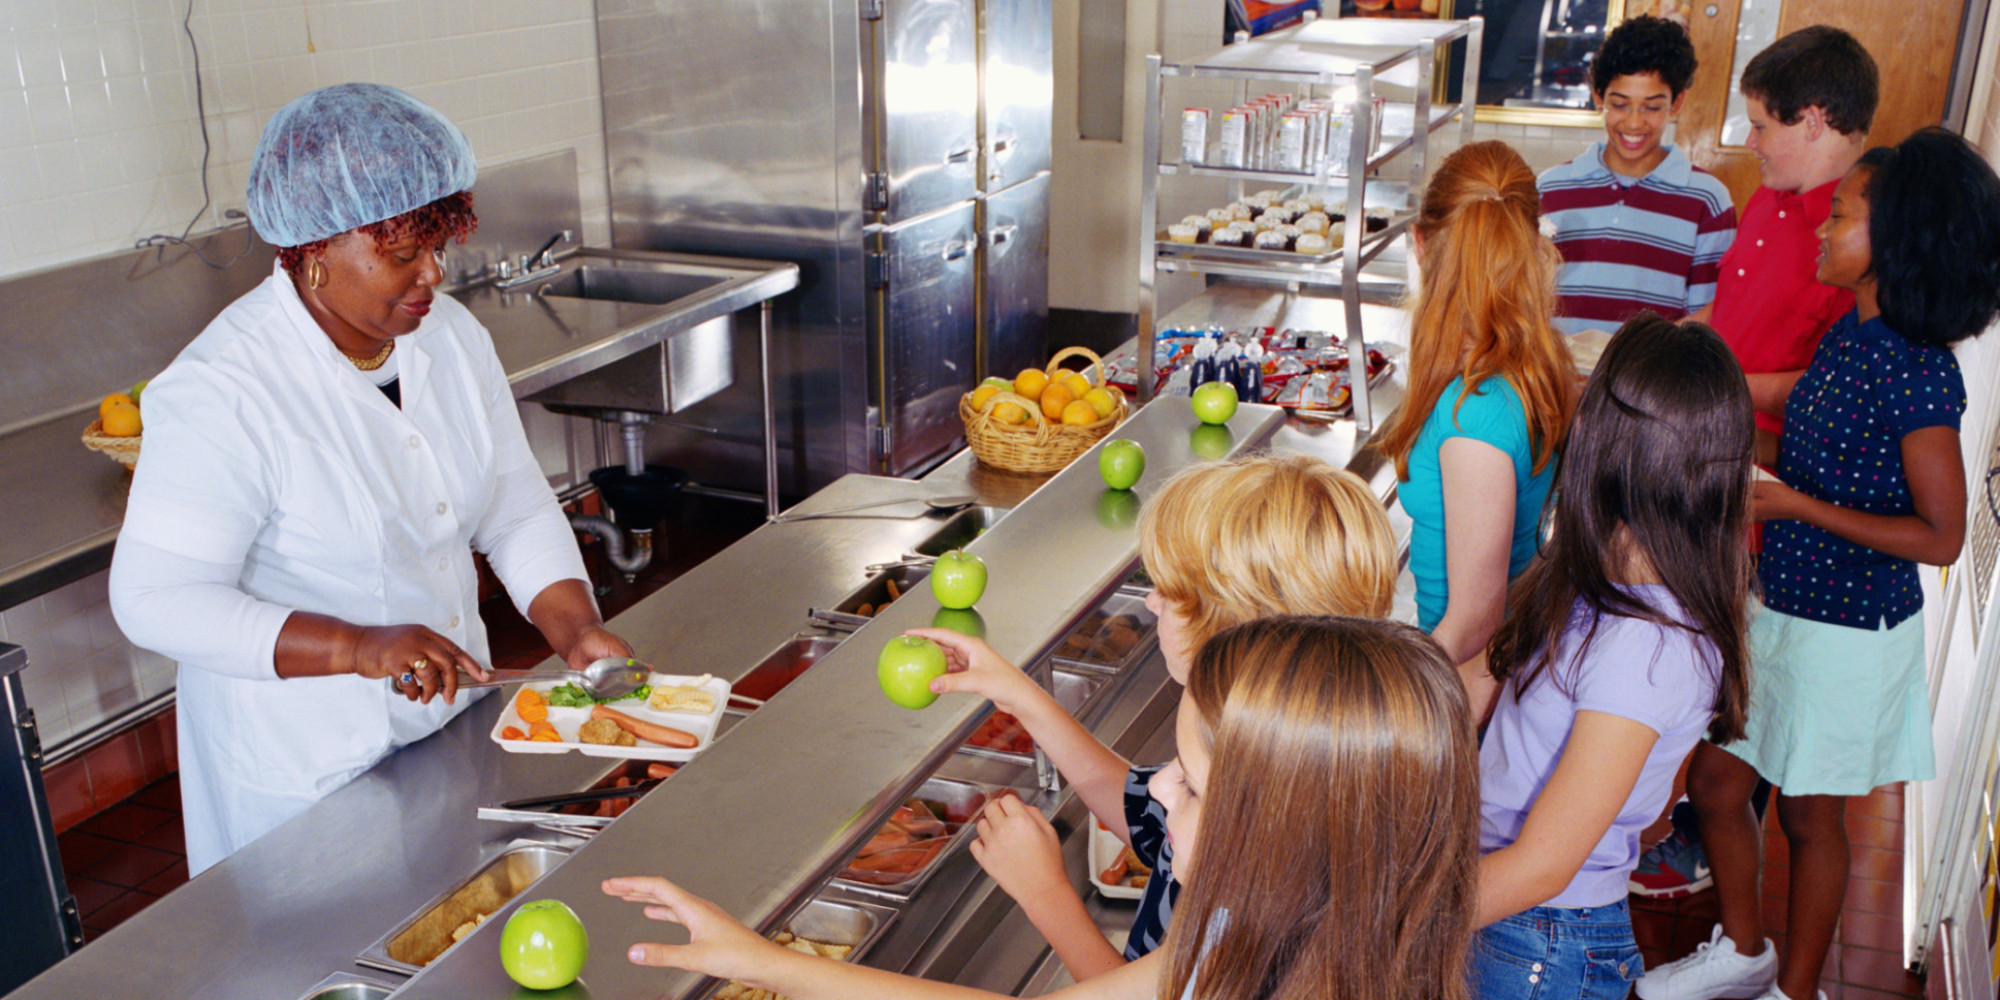 more on cafeterias and school culture